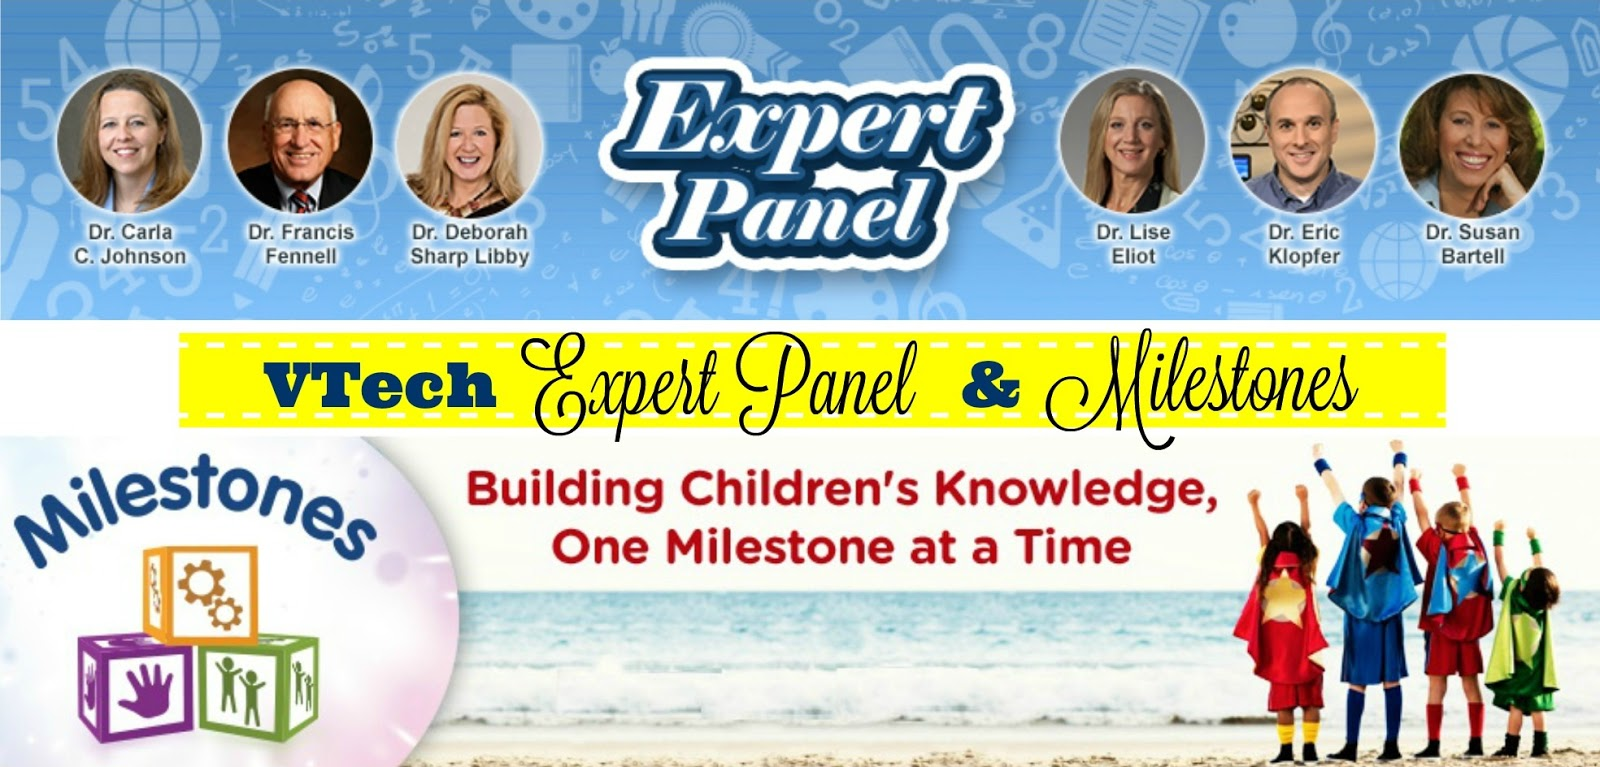 VTech expert panel and milestones